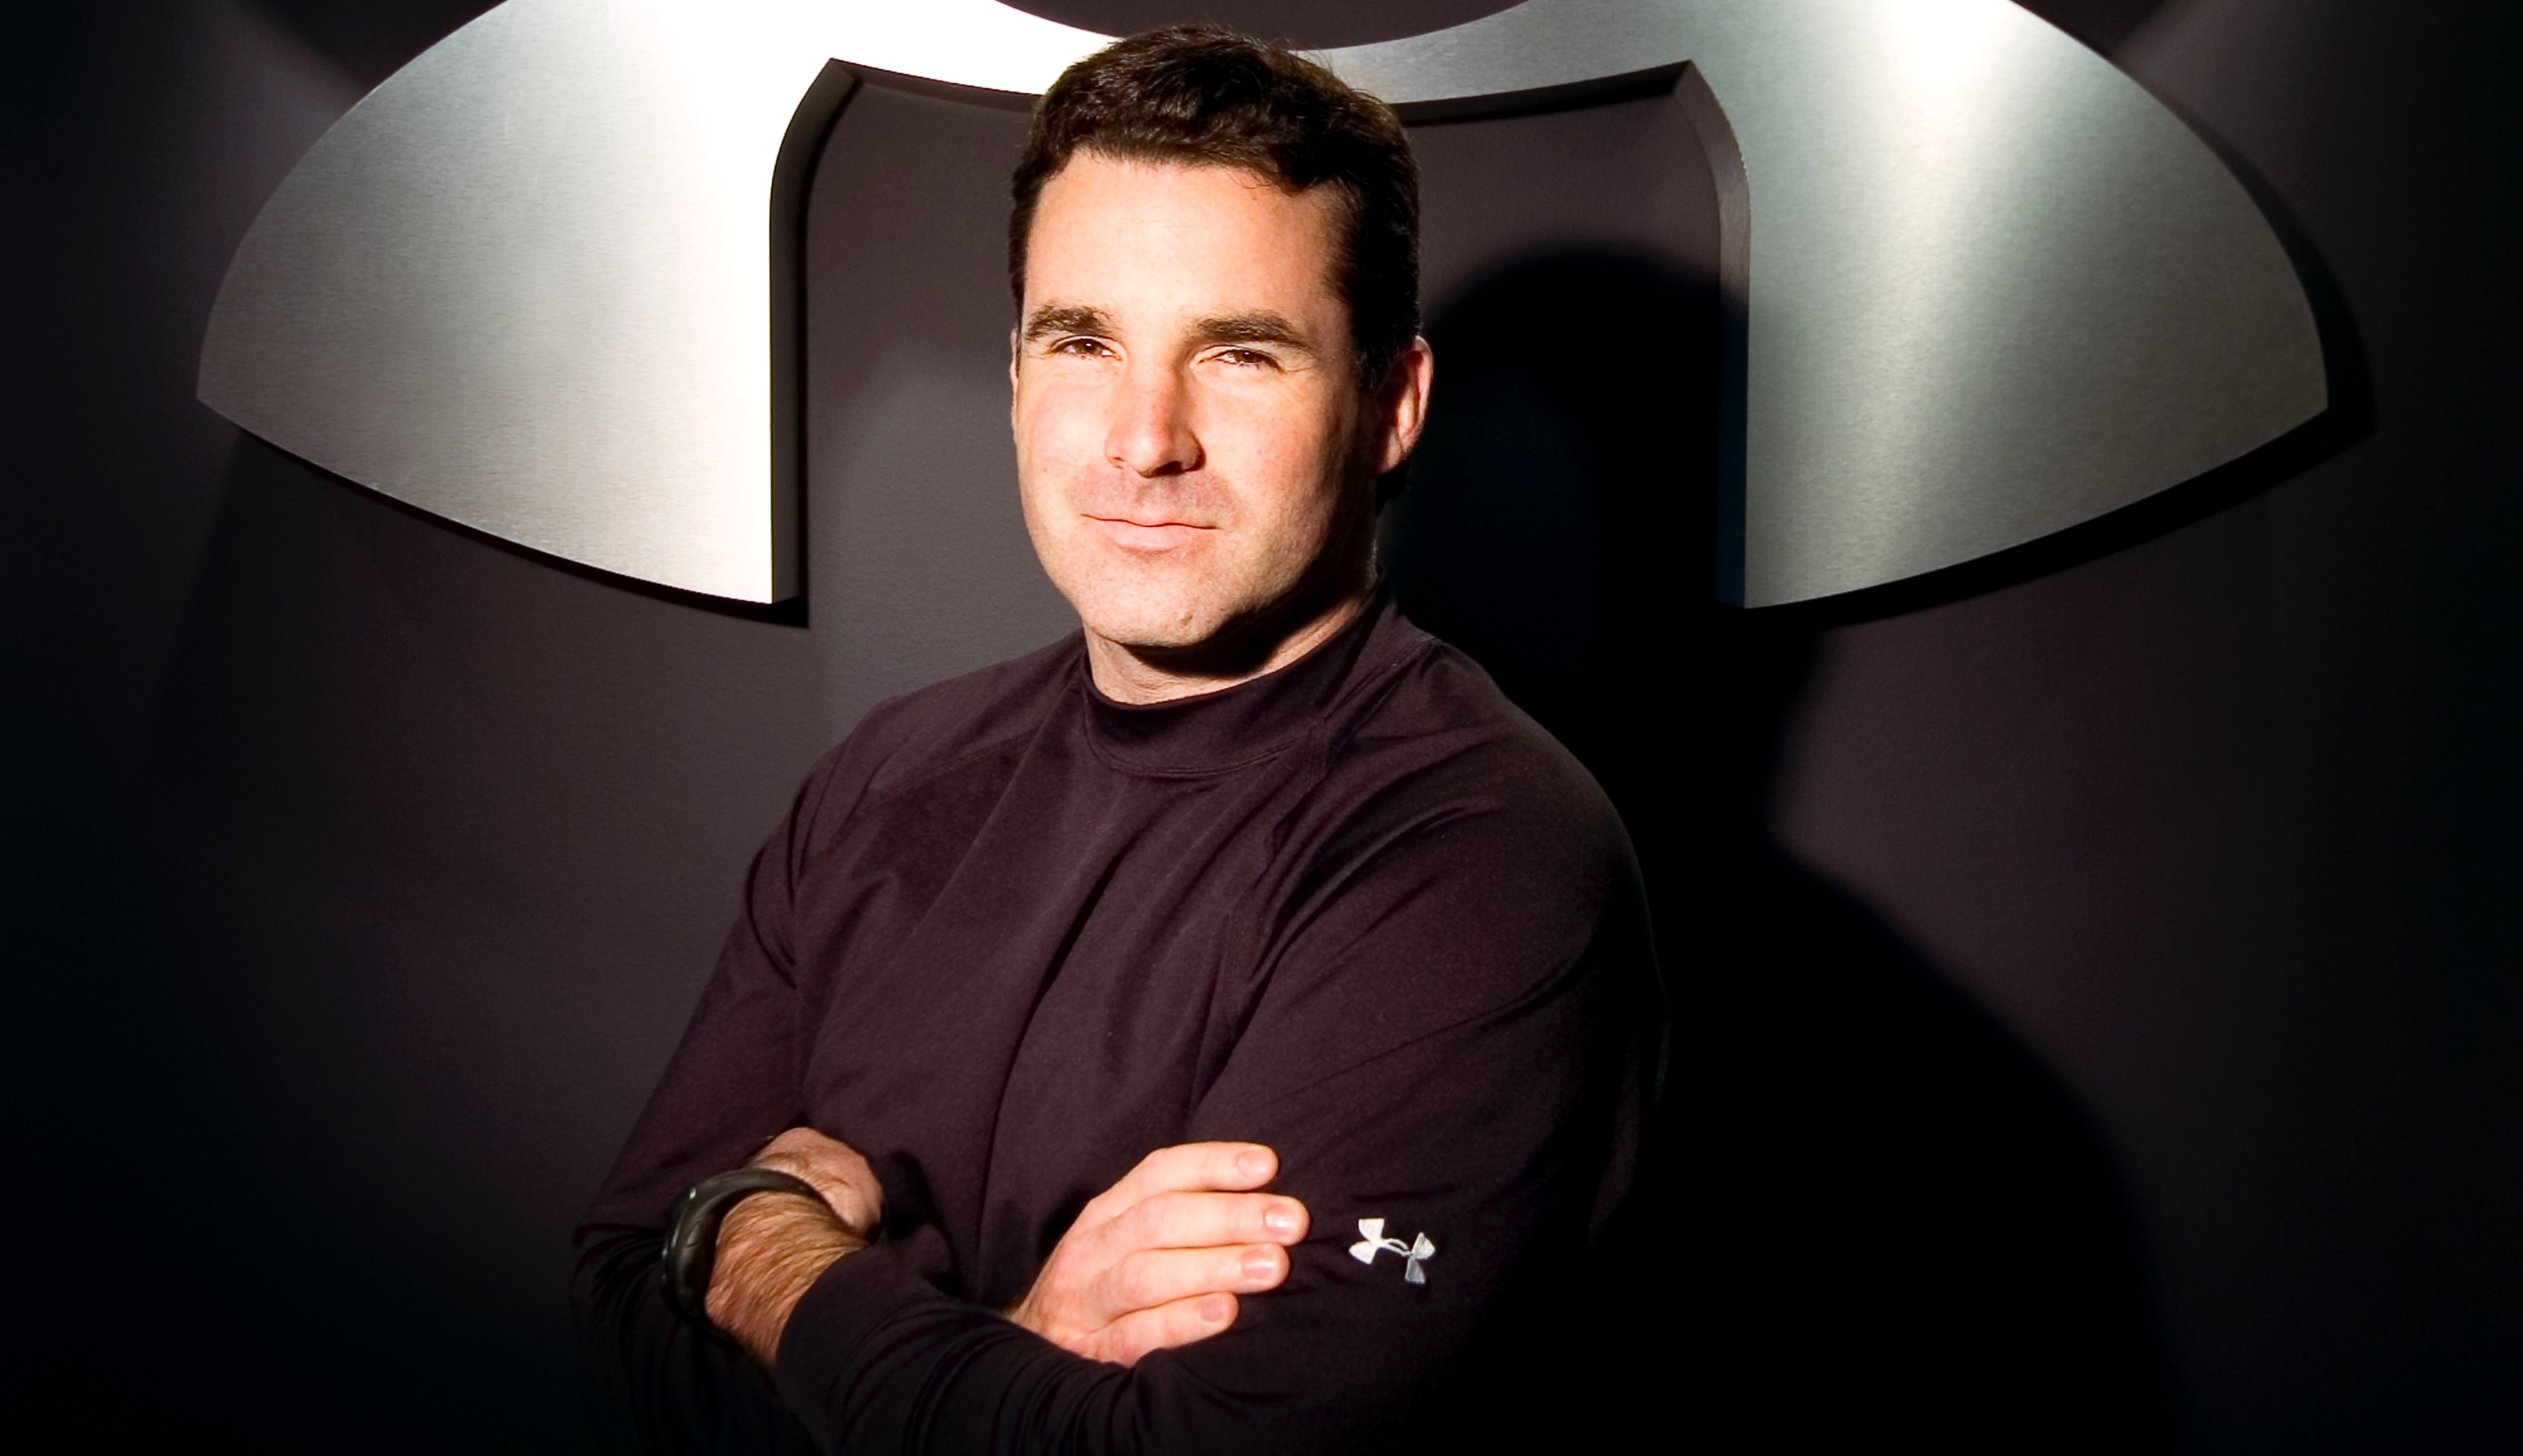 Kevin Plank | Source: Wikimedia Commons